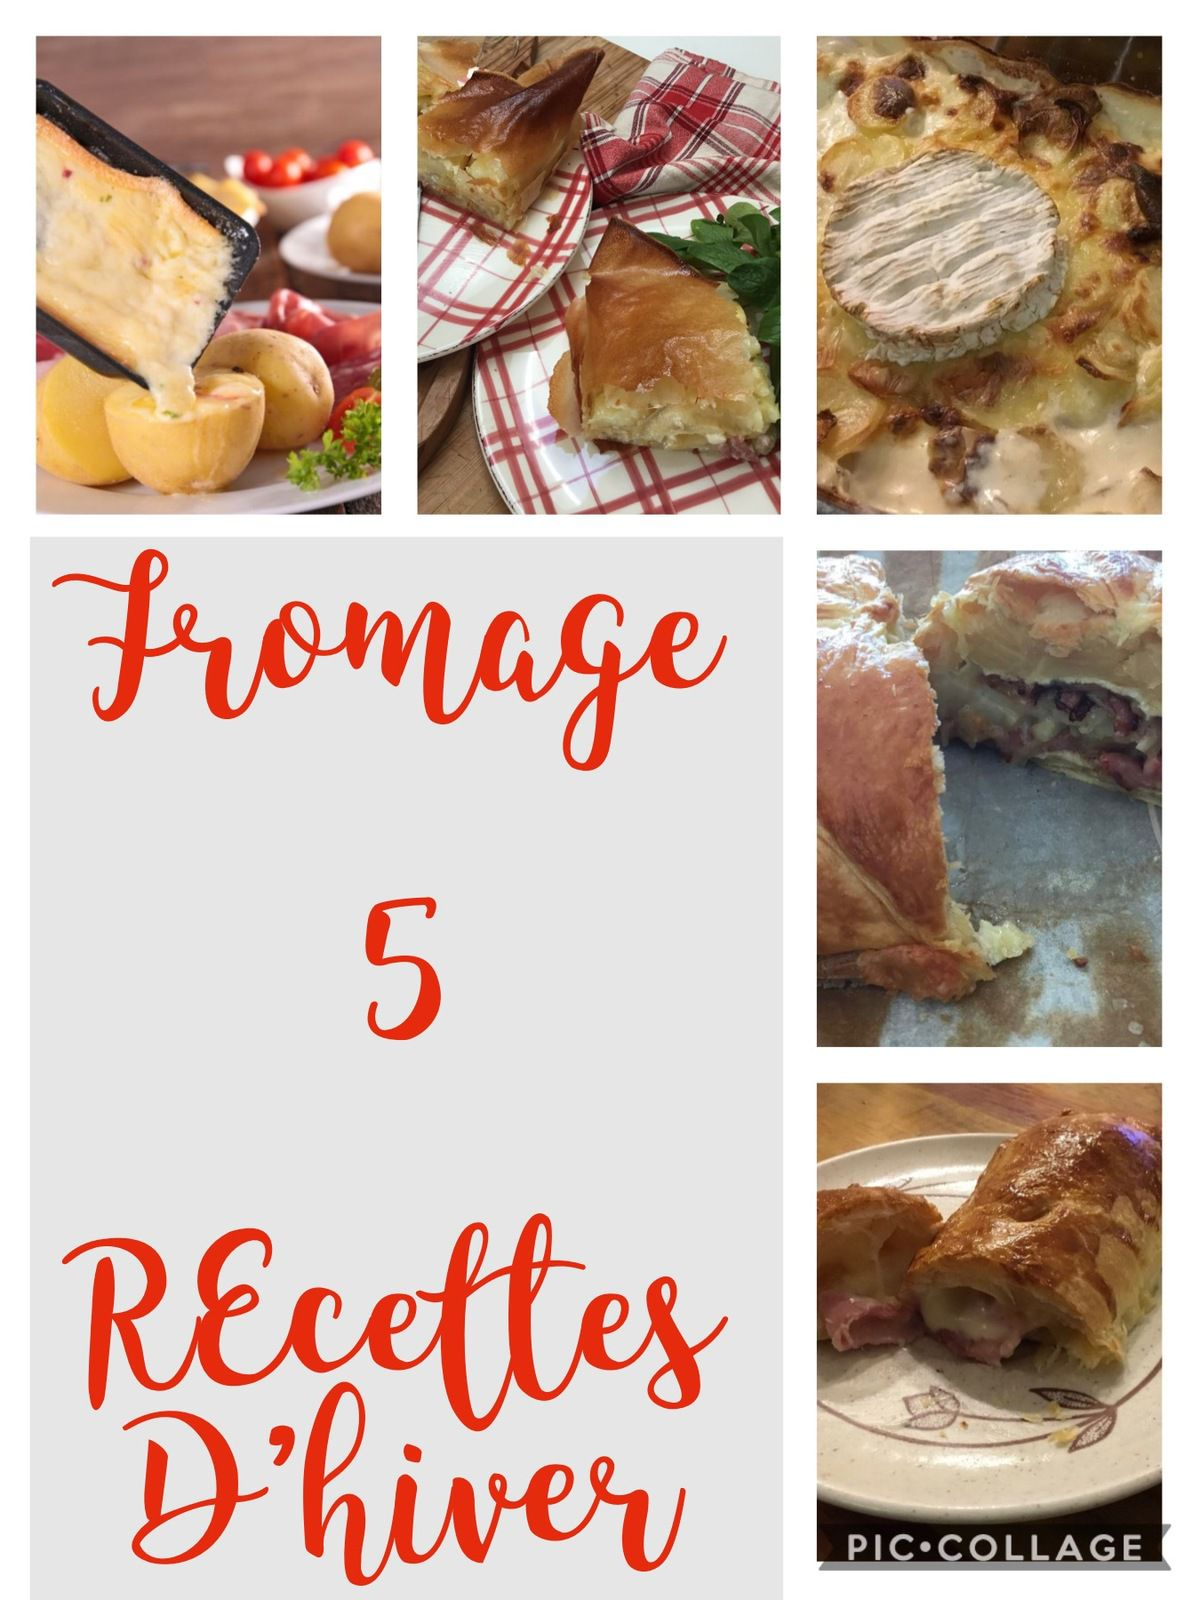 Fromage, 5 recettes d'hiver